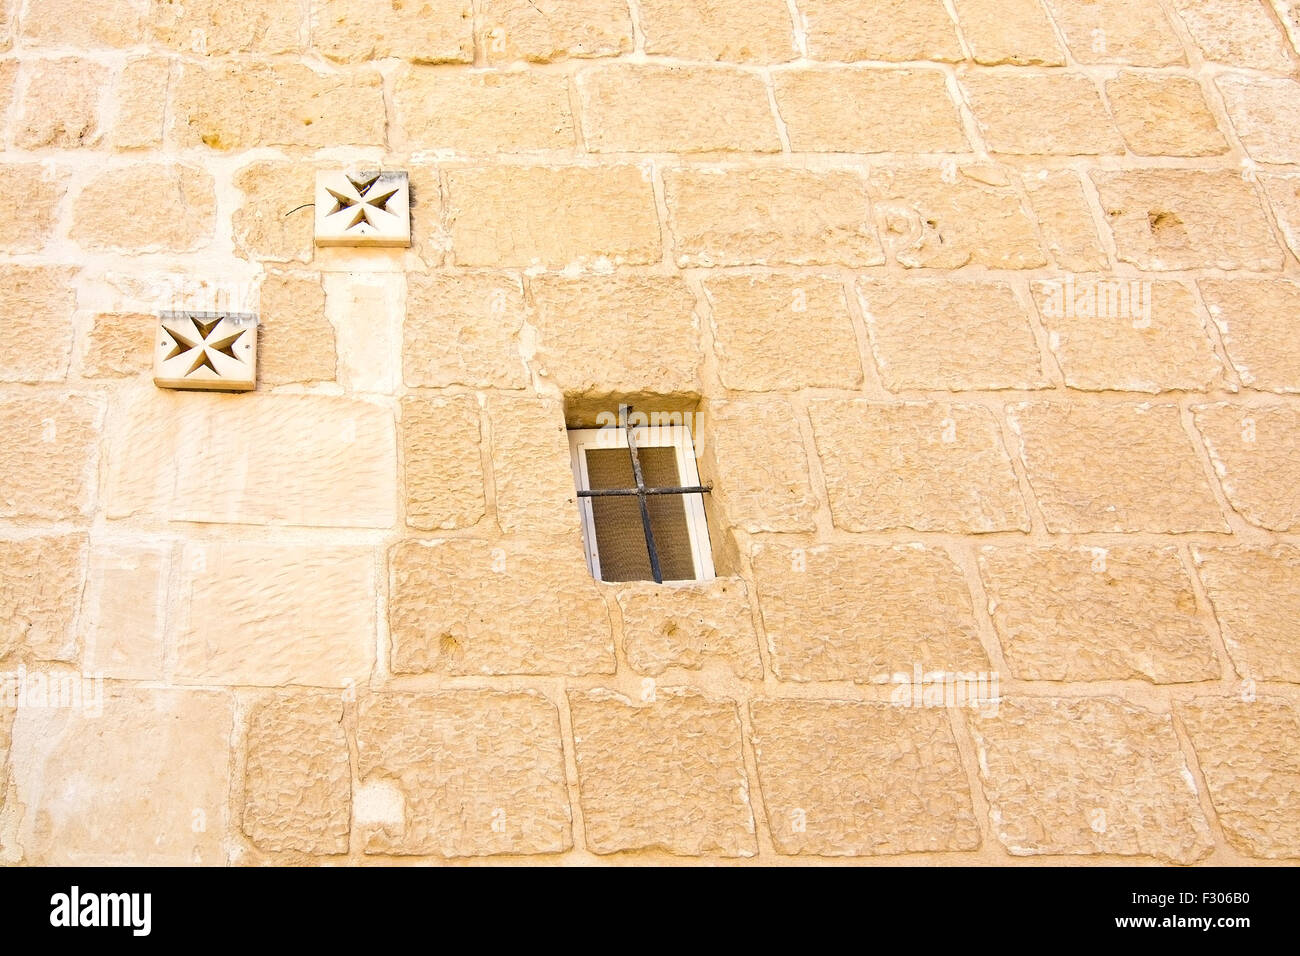 Maltese cross wall decorations and window on old wall in Mdina Stock ...